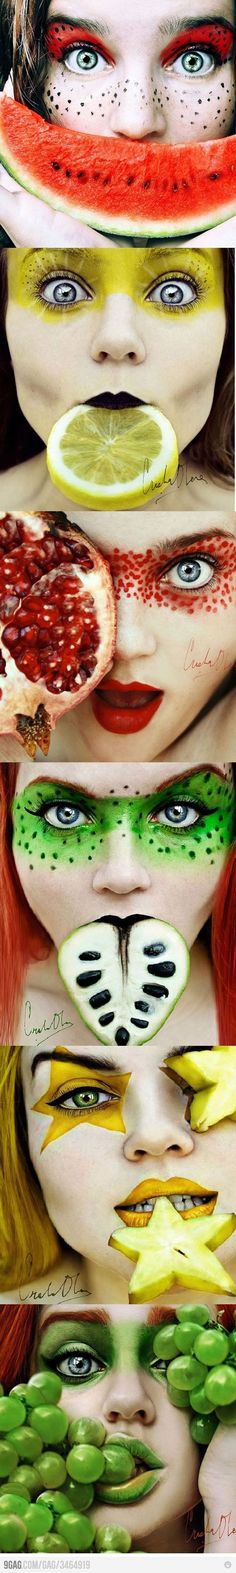 Very fruitful photography and makeup